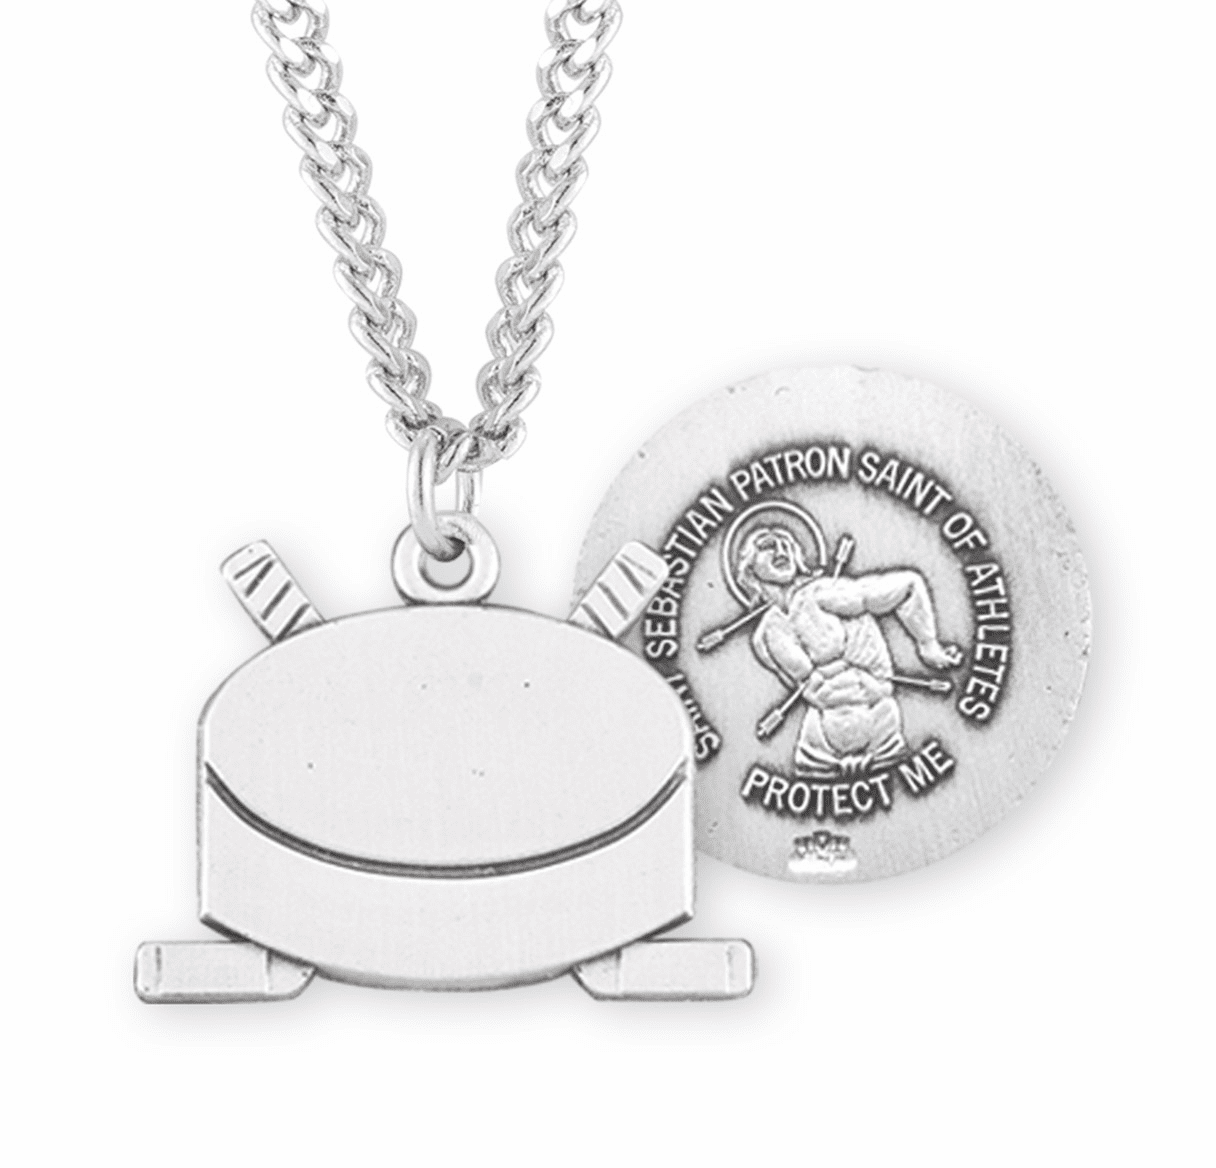 HMH Religious St Sebastian Hockey Puck Sports Necklace